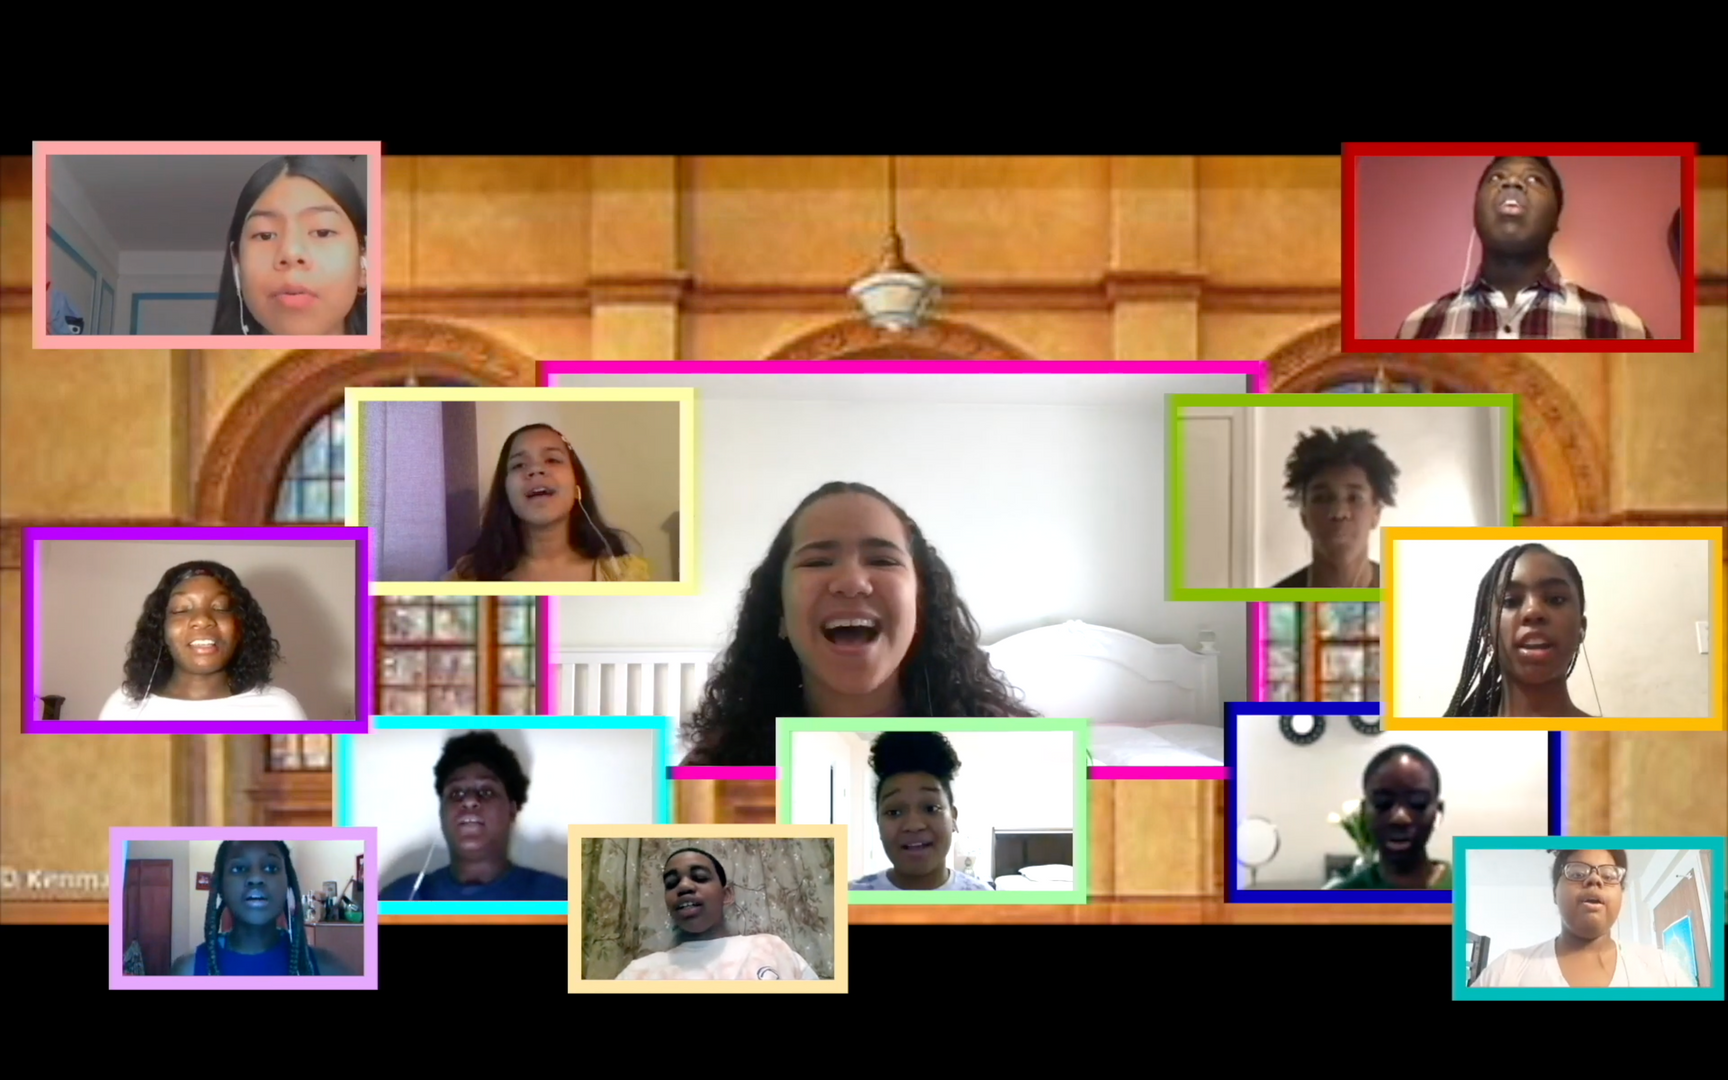 Thirteen students singing in virtual screen boxes in a nice house